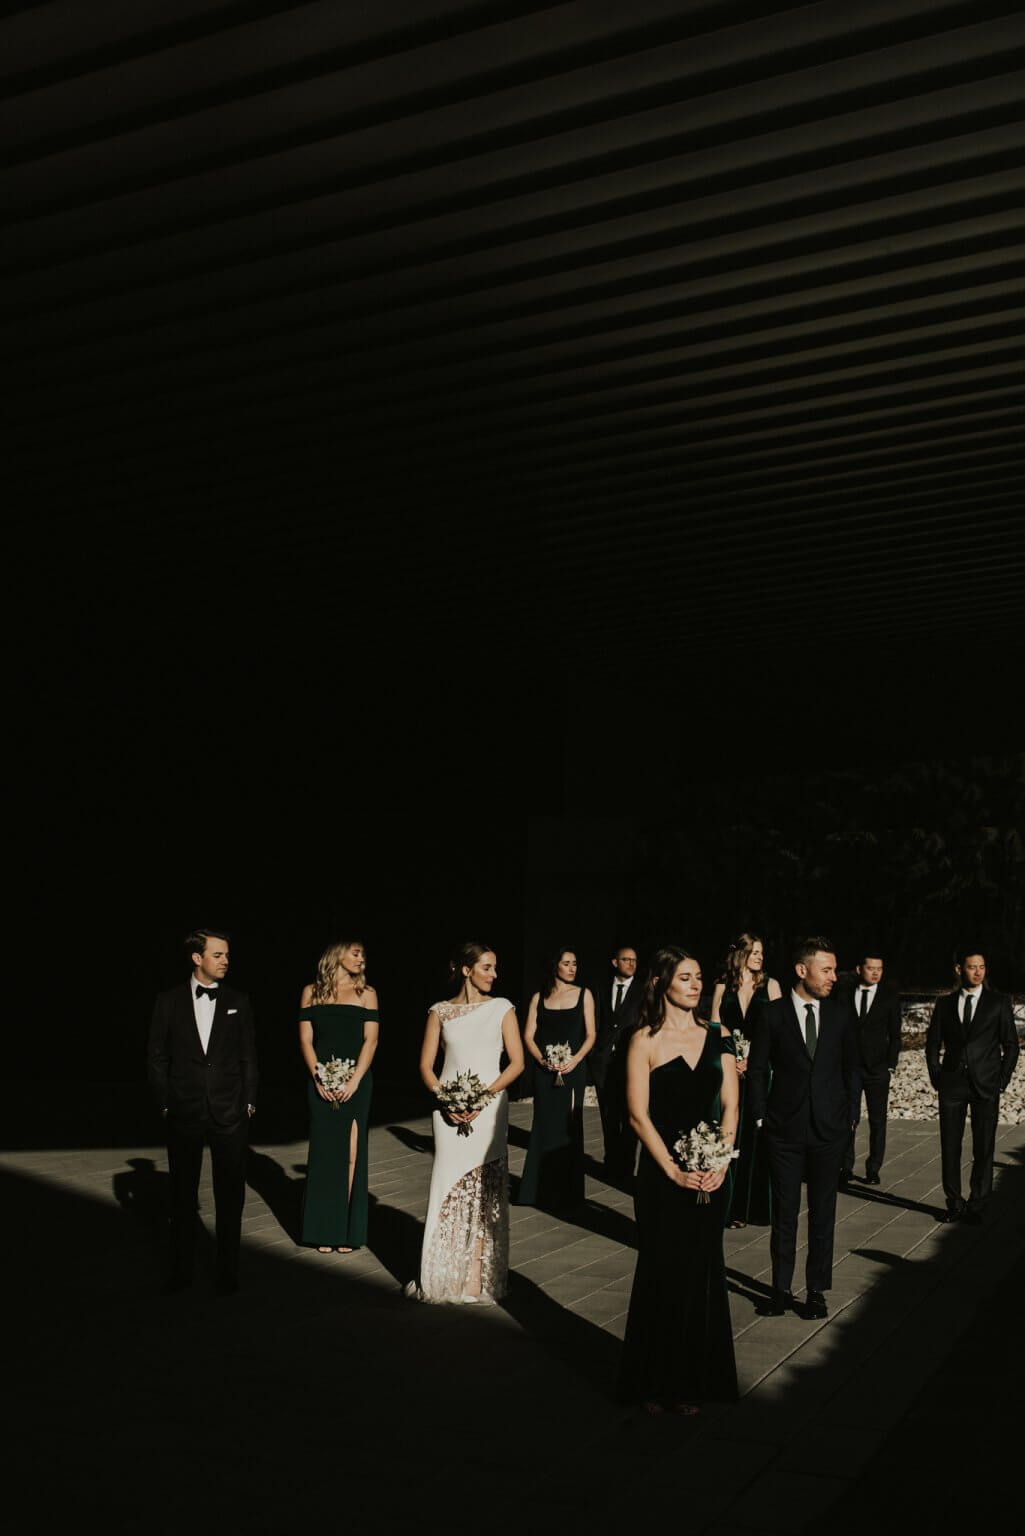 Wedding party portrait at the Audain Museum in Whistler British Columbia photographed by Vancouver photographers Cat and Jeff of The Apartment Photography